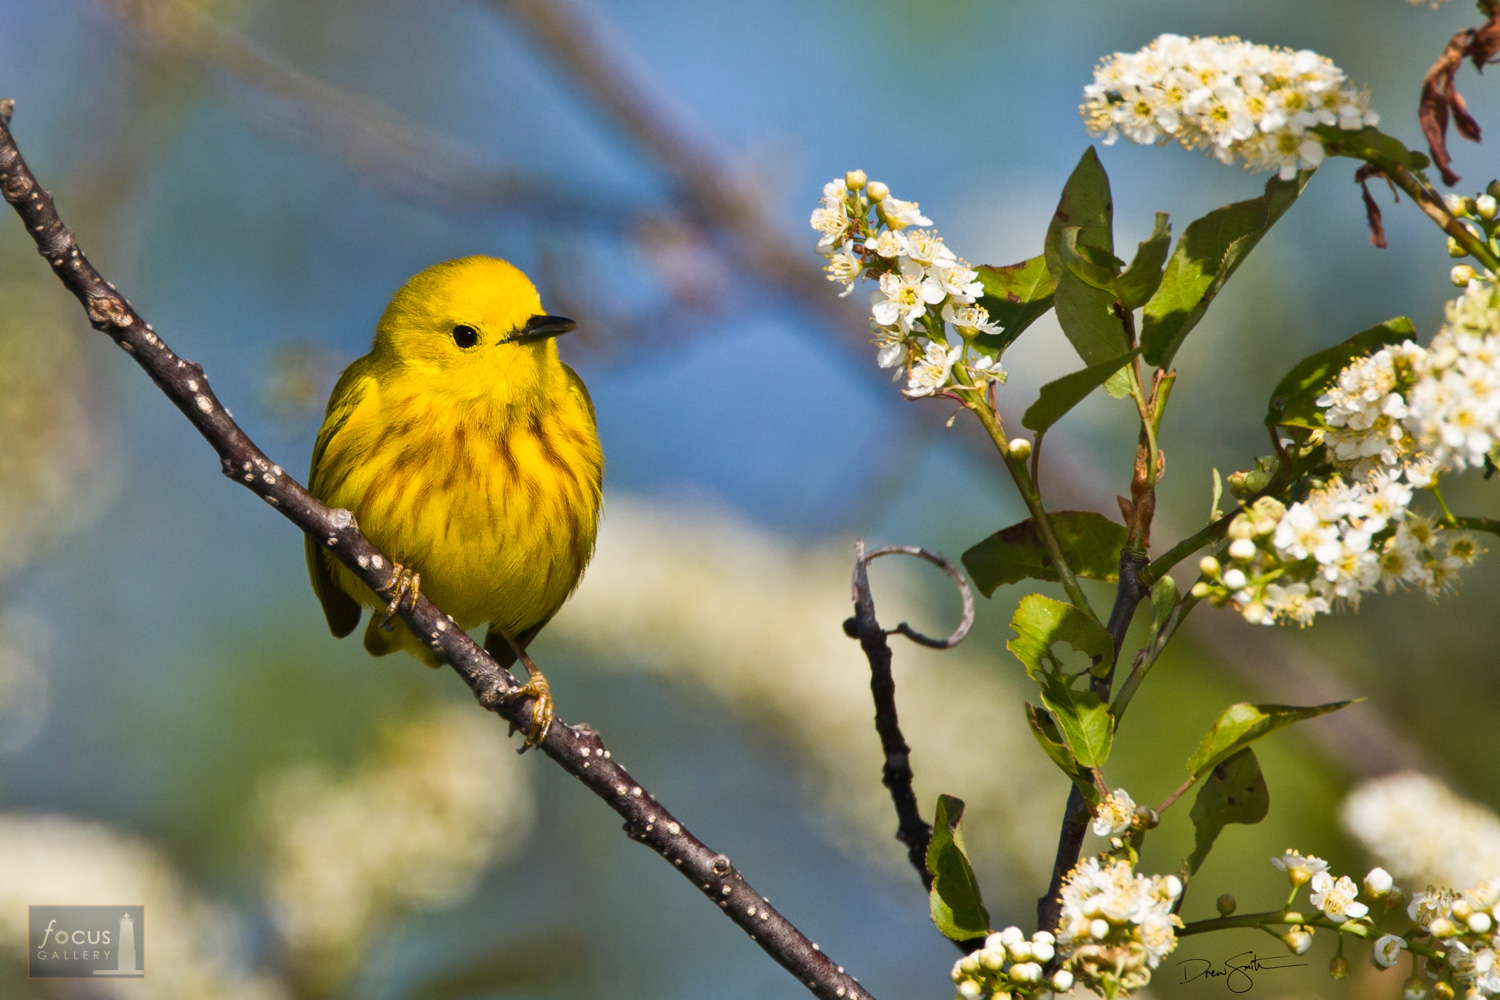 Photo © Drew Smith The Yellow Warbler is a beautiful, boldly-colored bird - lots of fun to photograph!  This one was foraging...